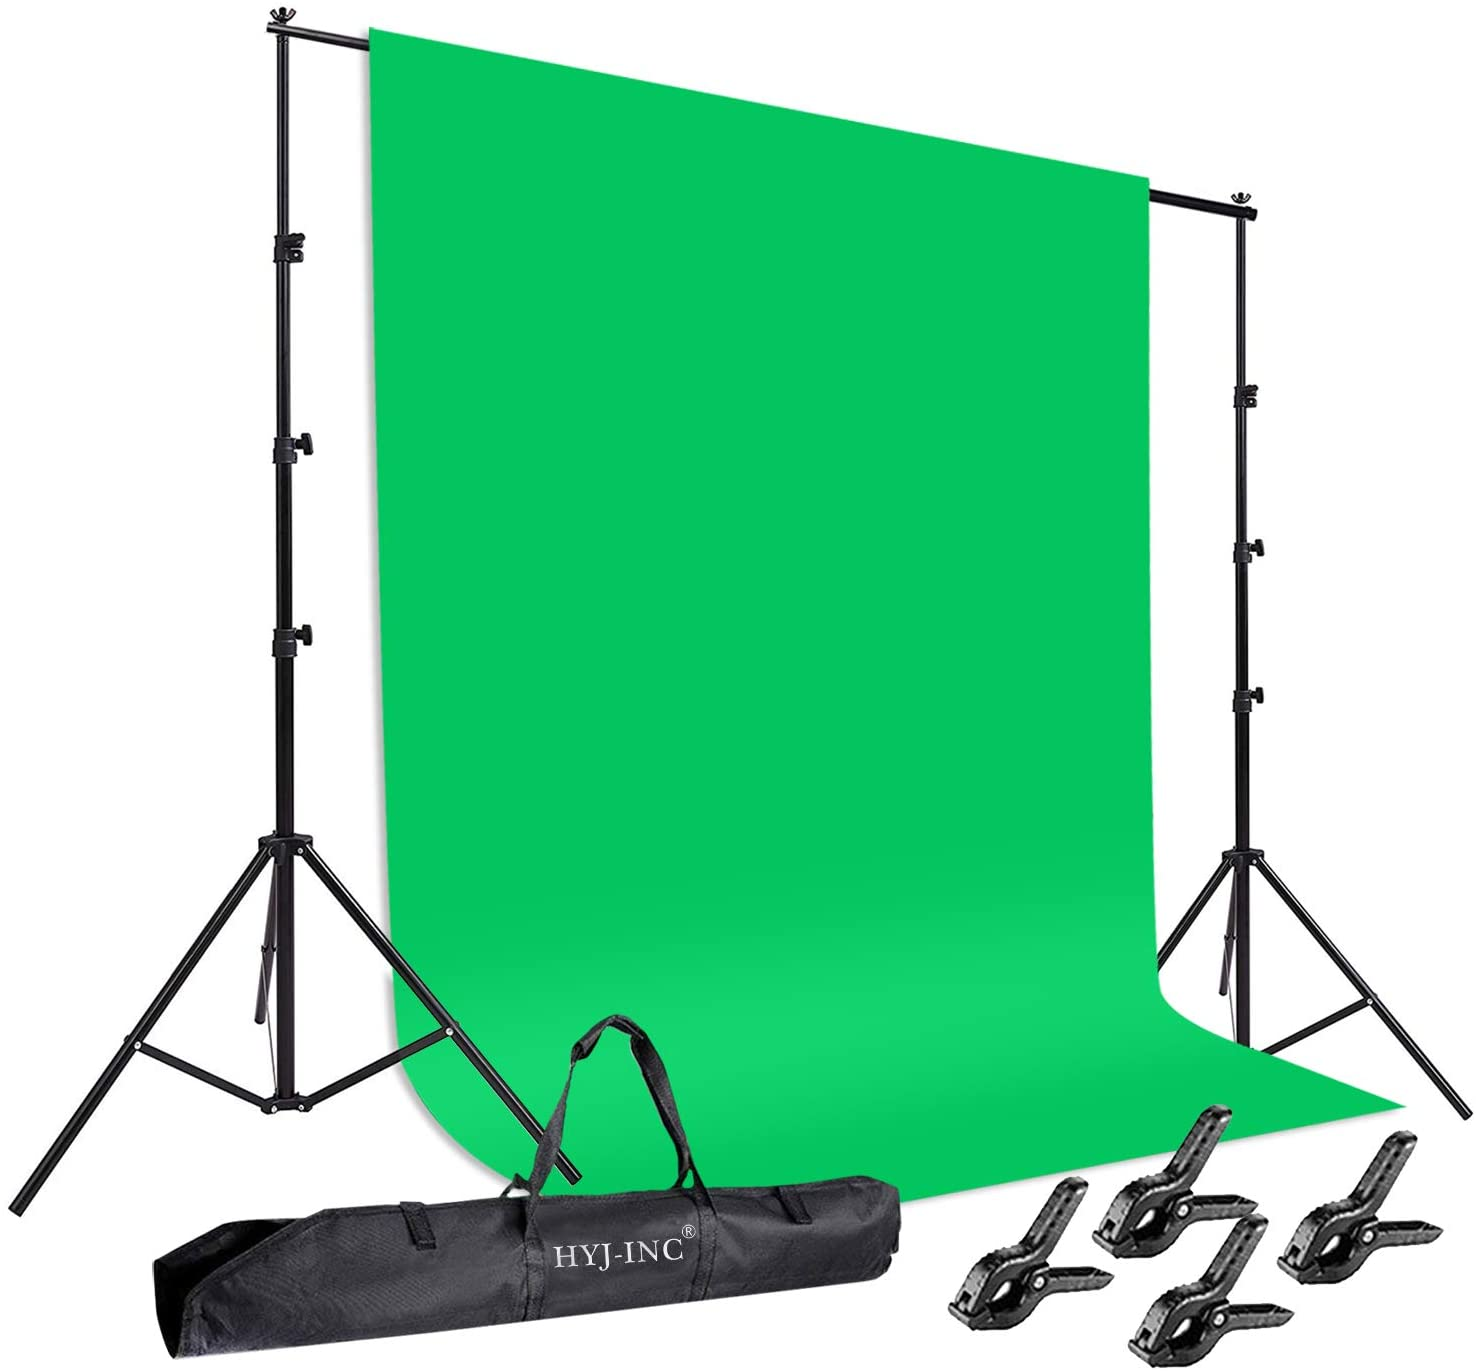 HYJ-INC Photo Background Support System with 8.5 x 10ft Backdrop Stand Kit, 6 x 9.5ft 100% Pure Muslin Chromakey Green Screen Backdrop,Clamp, Carry Bag for Photography Video Studio